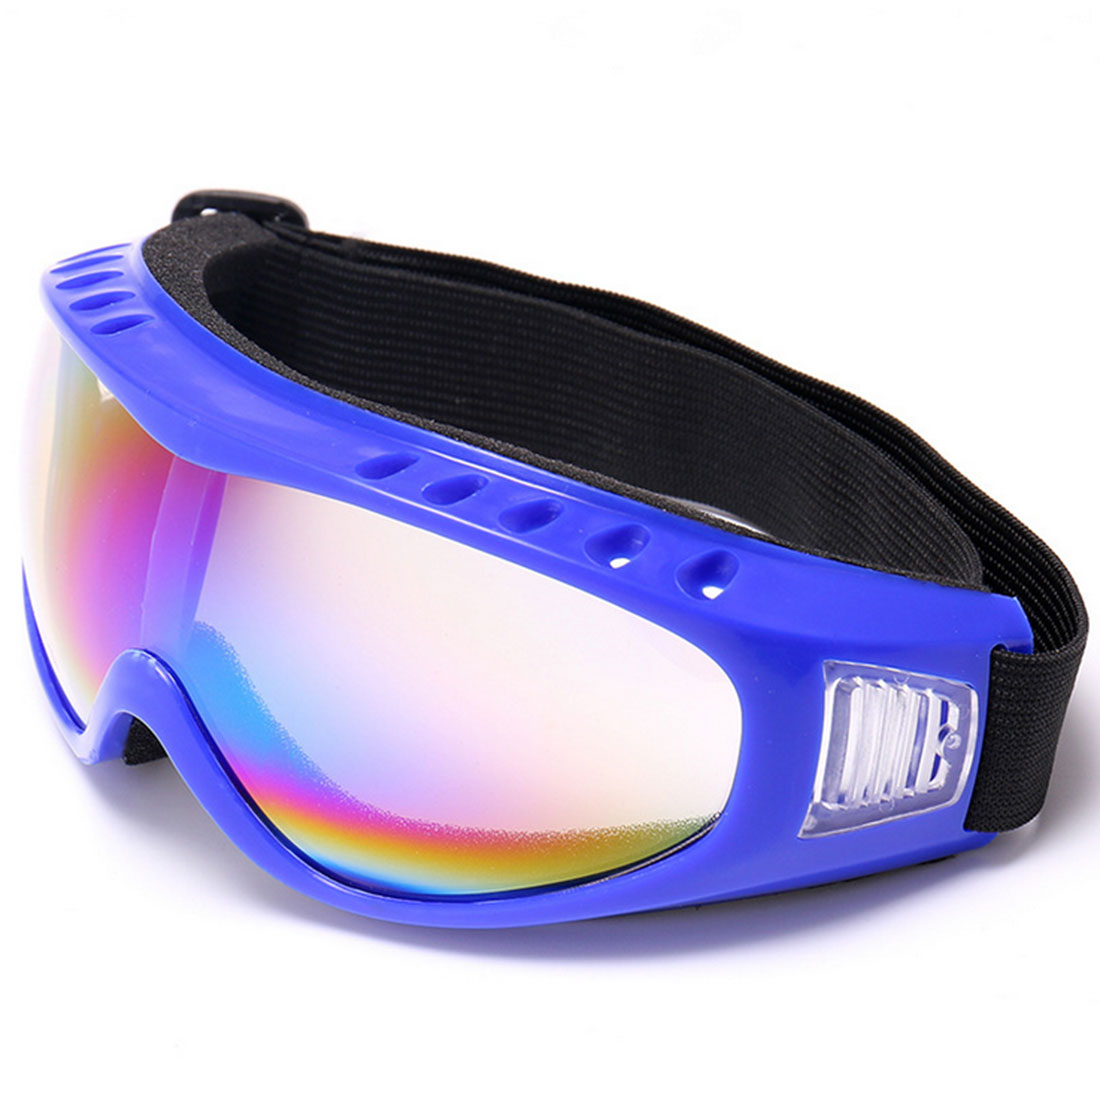 New Professional Fishing Eyewear Sunglasses For Goggle Outdoor Activities Skiing Cycling Motorbike Wind Goggle